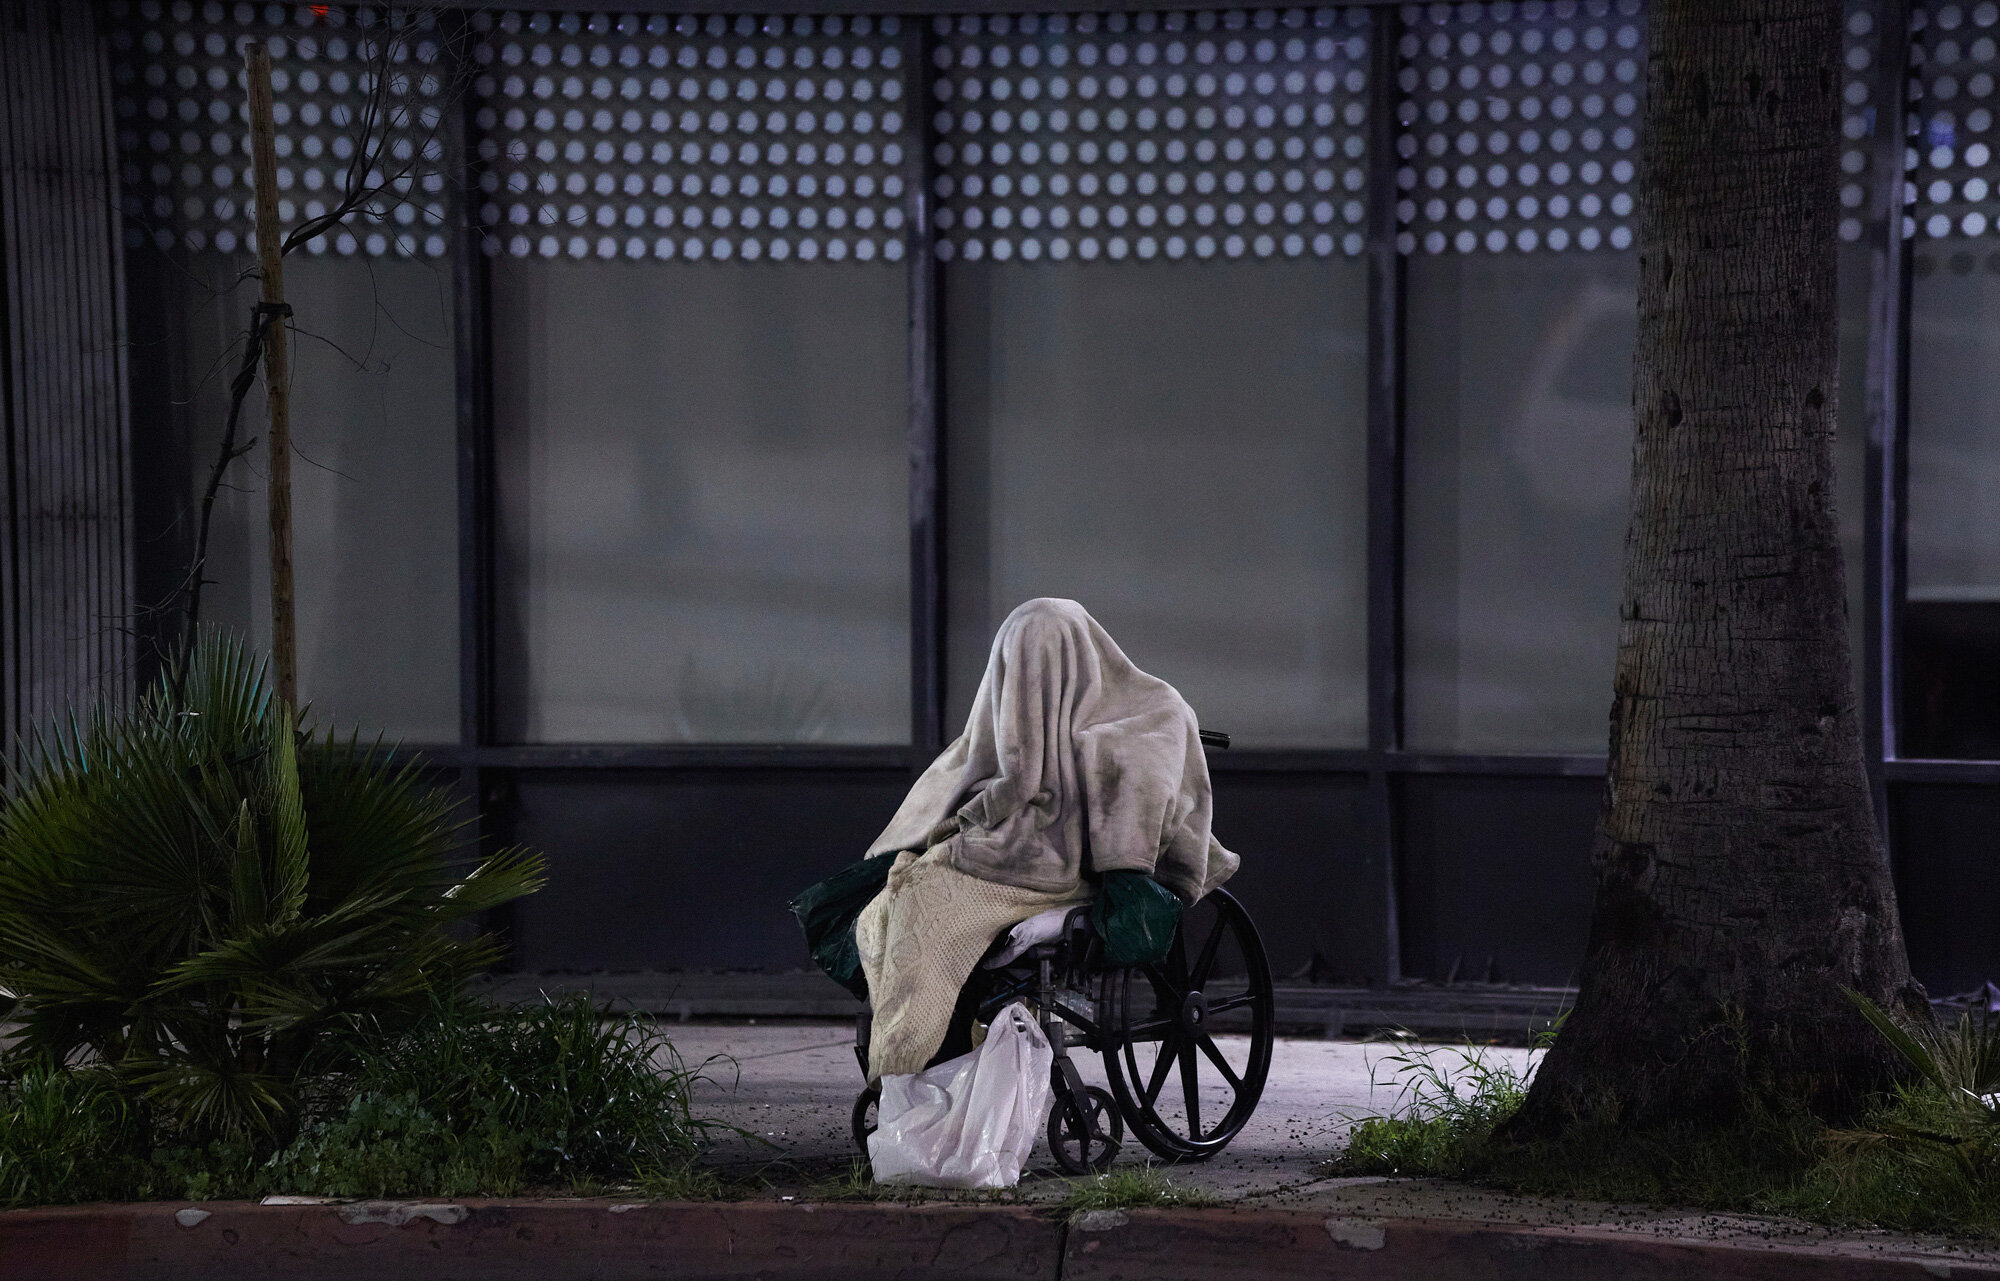 A homeless person sits in a wheelchair during rainy weather on Sunset Blvd. in the Echo Park neighborhood of Los Angeles on April 6, 2020. California Gov. Gavin Newsom signed an emergency order in mid-March to spend $150 million to help the homeless during the pandemic. (AP Photo/Damian Dovarganes)